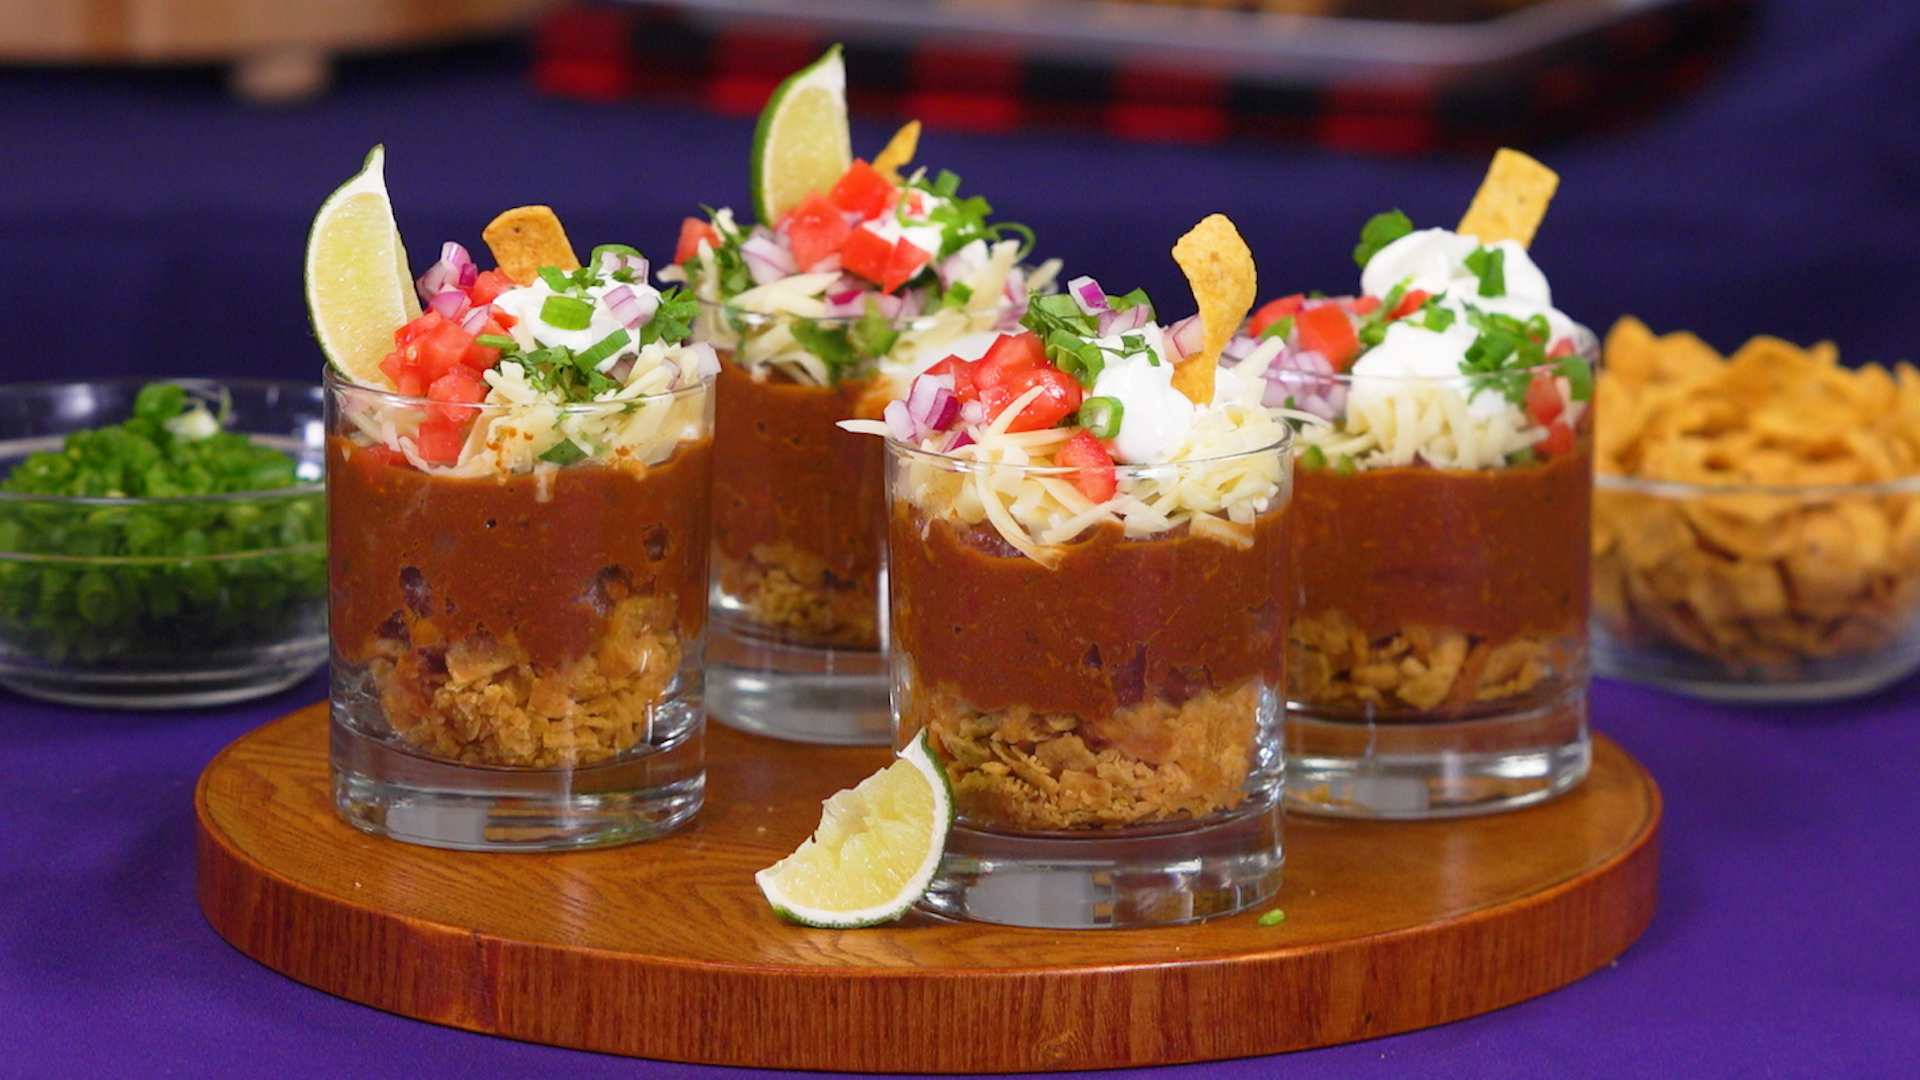 Make a big pot of chili and serve it in mini glasses for a party